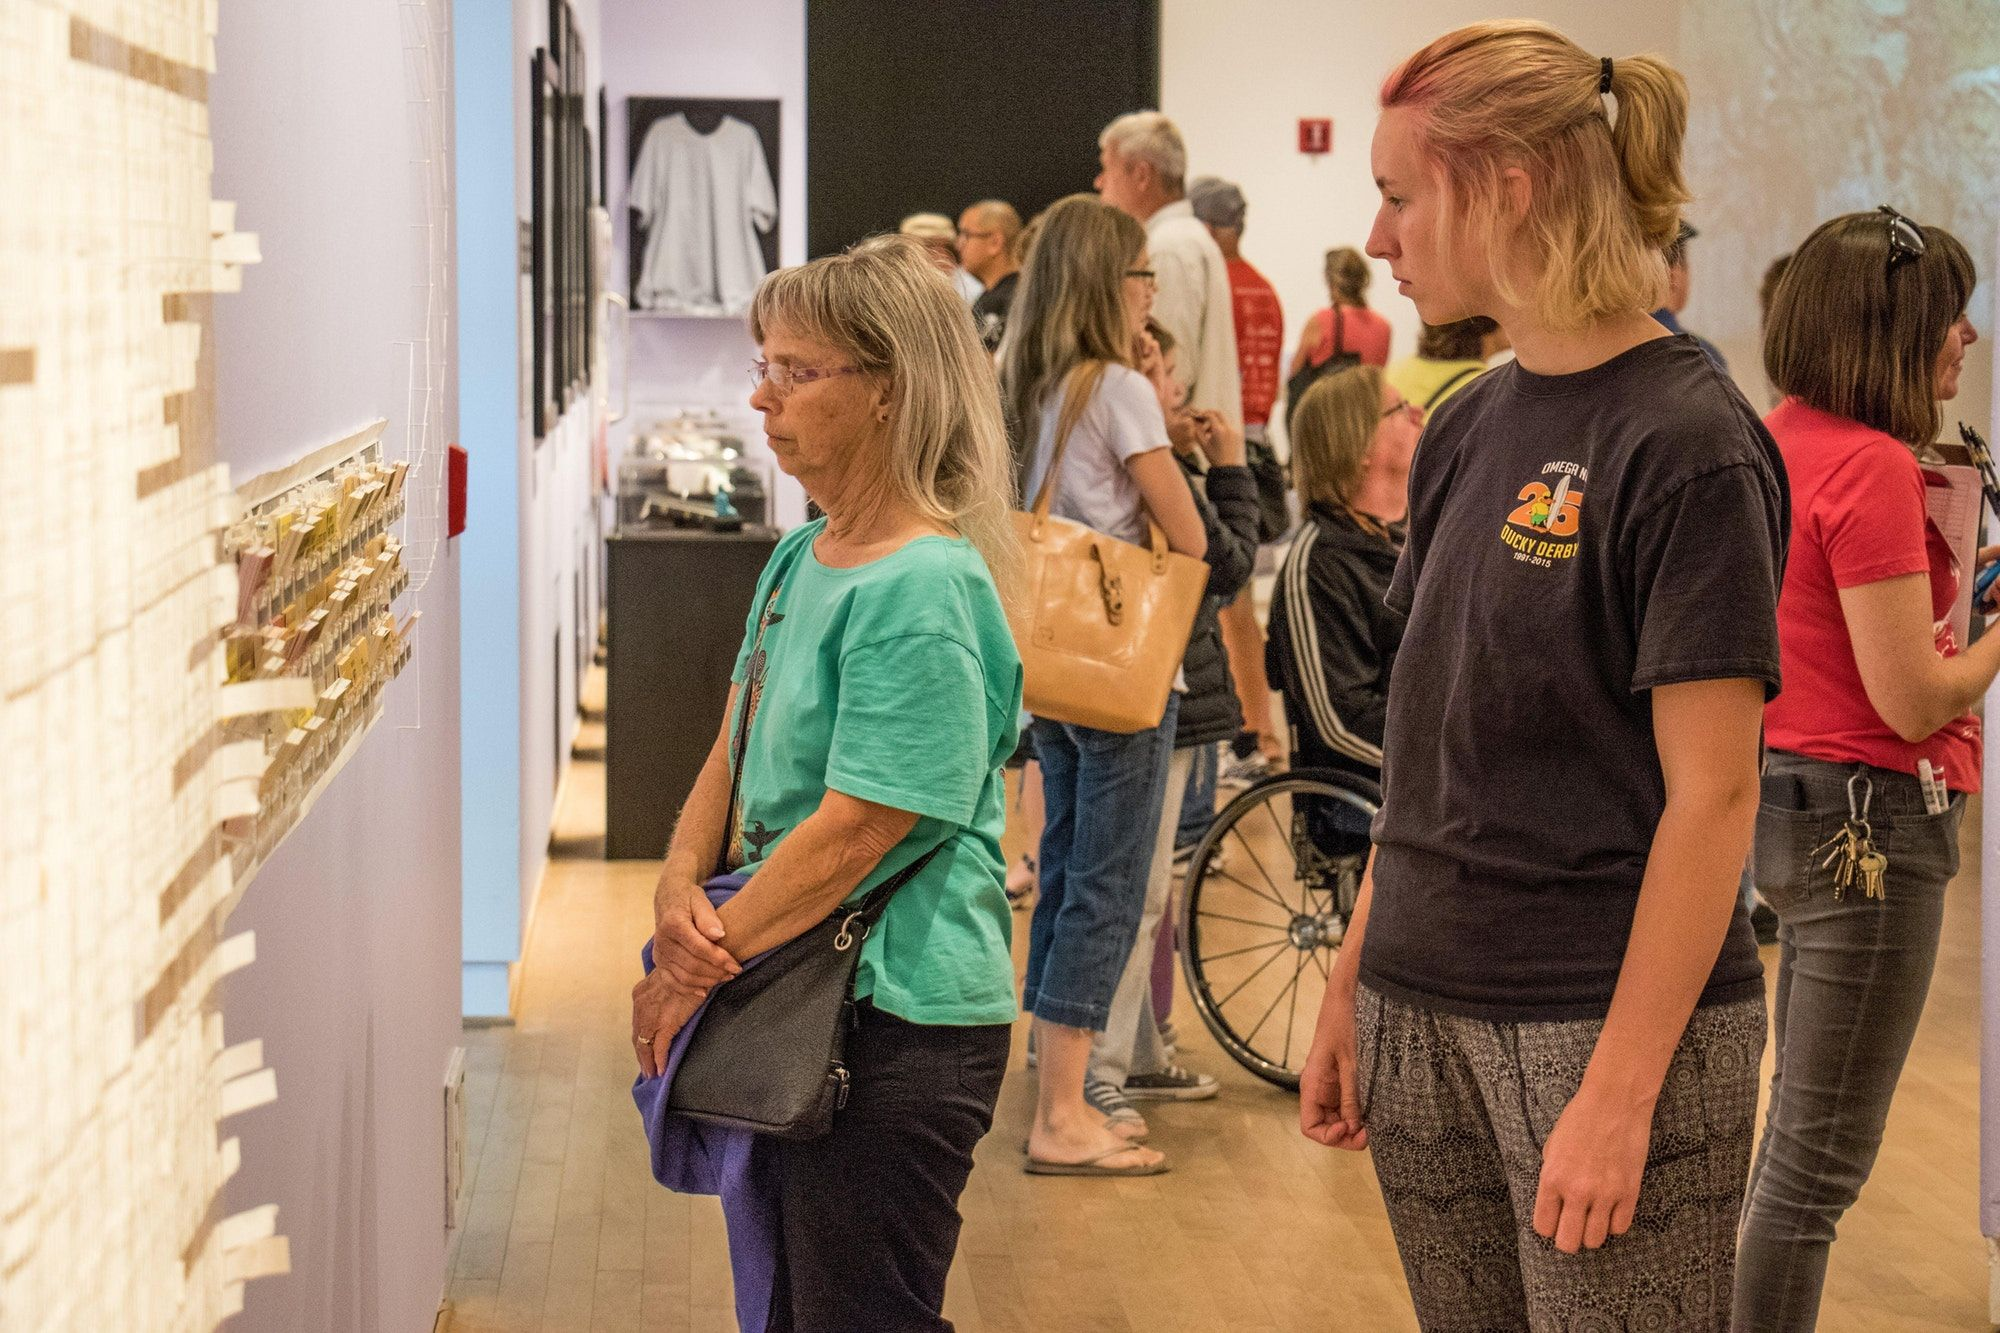 People looking at exhibition element.